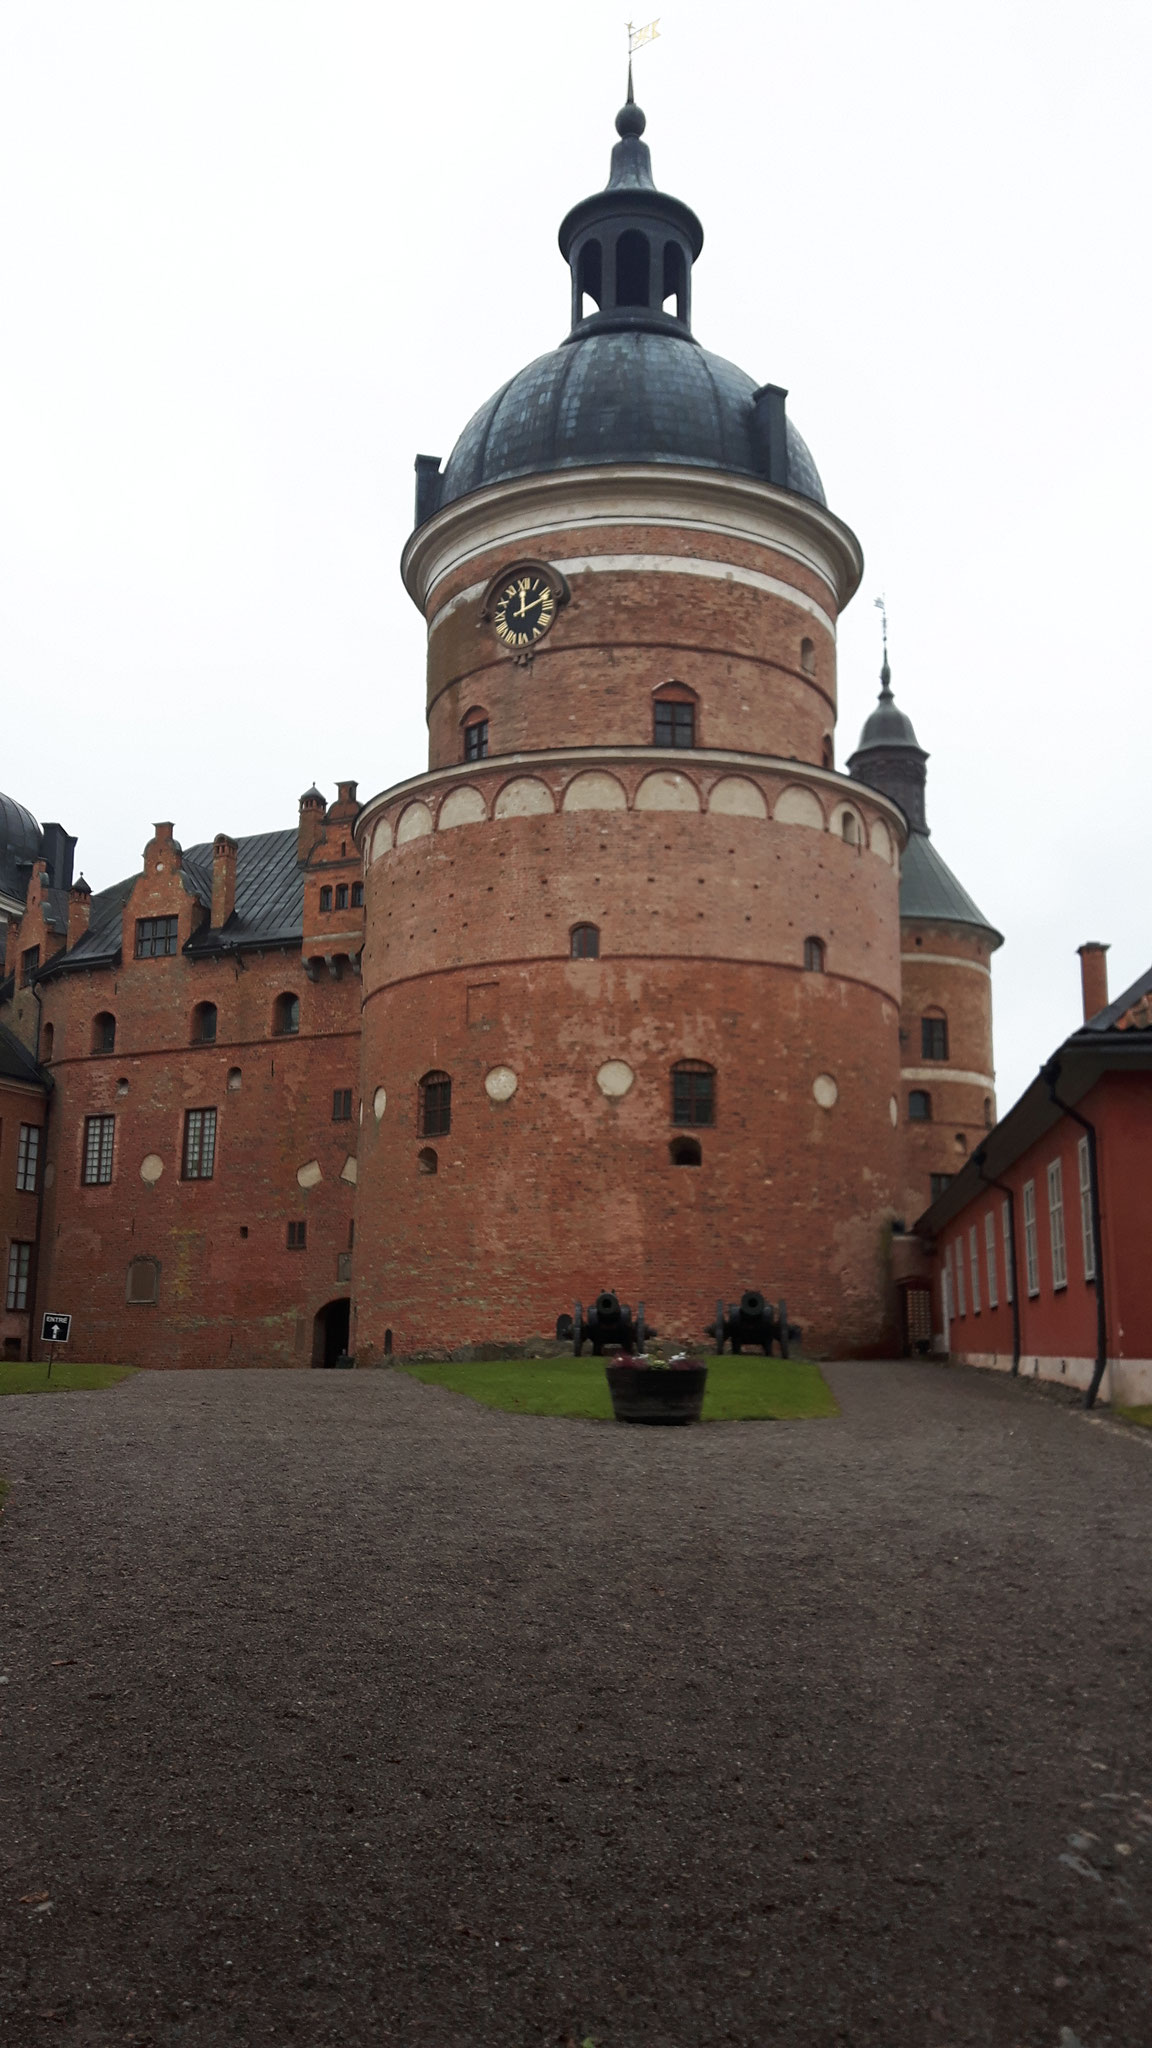 Schloss Gripsholm in Mariefred